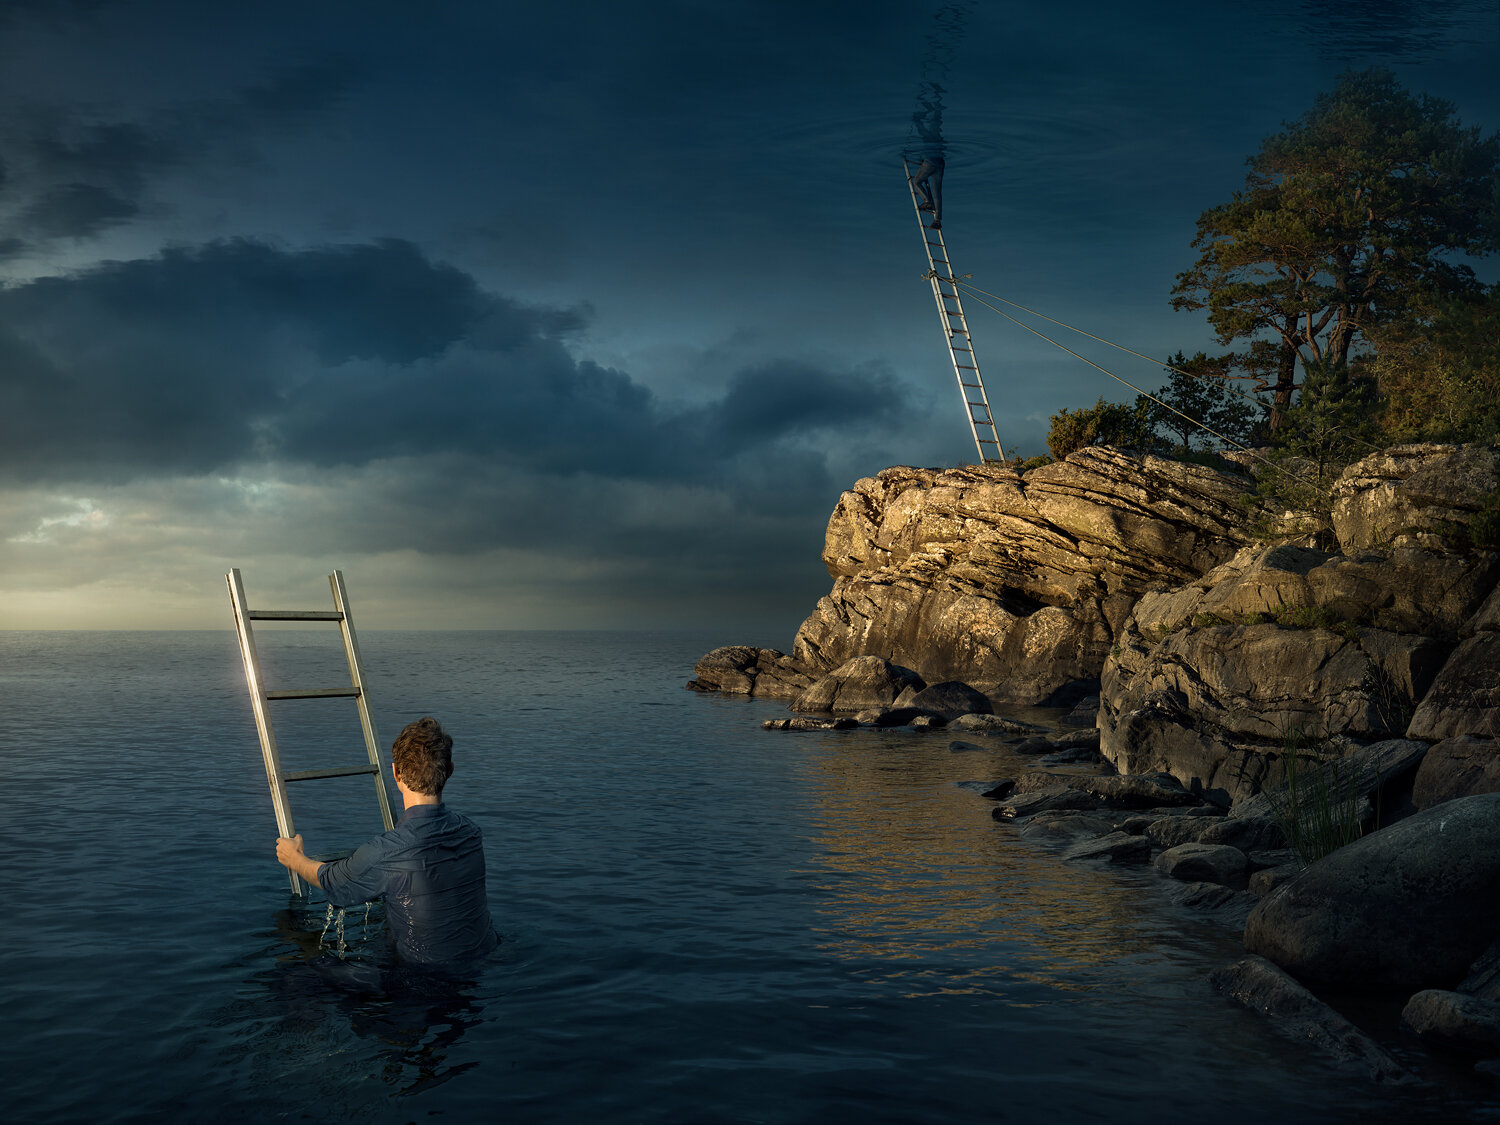 All above the sky by Erik Johansson